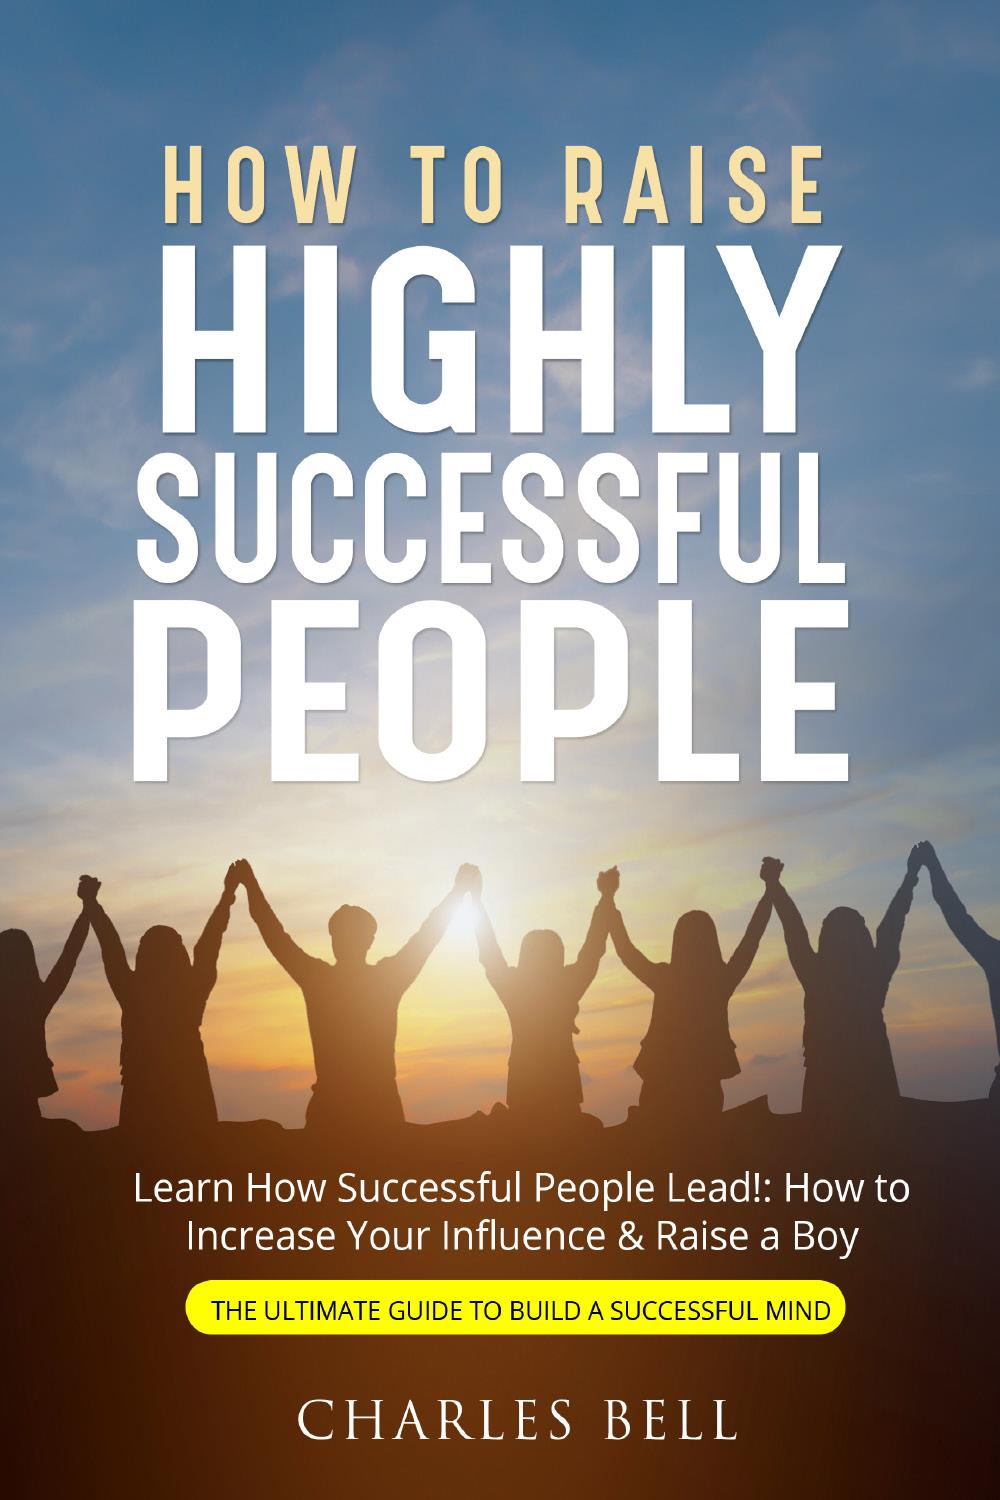 How to Raise Highly Successful People